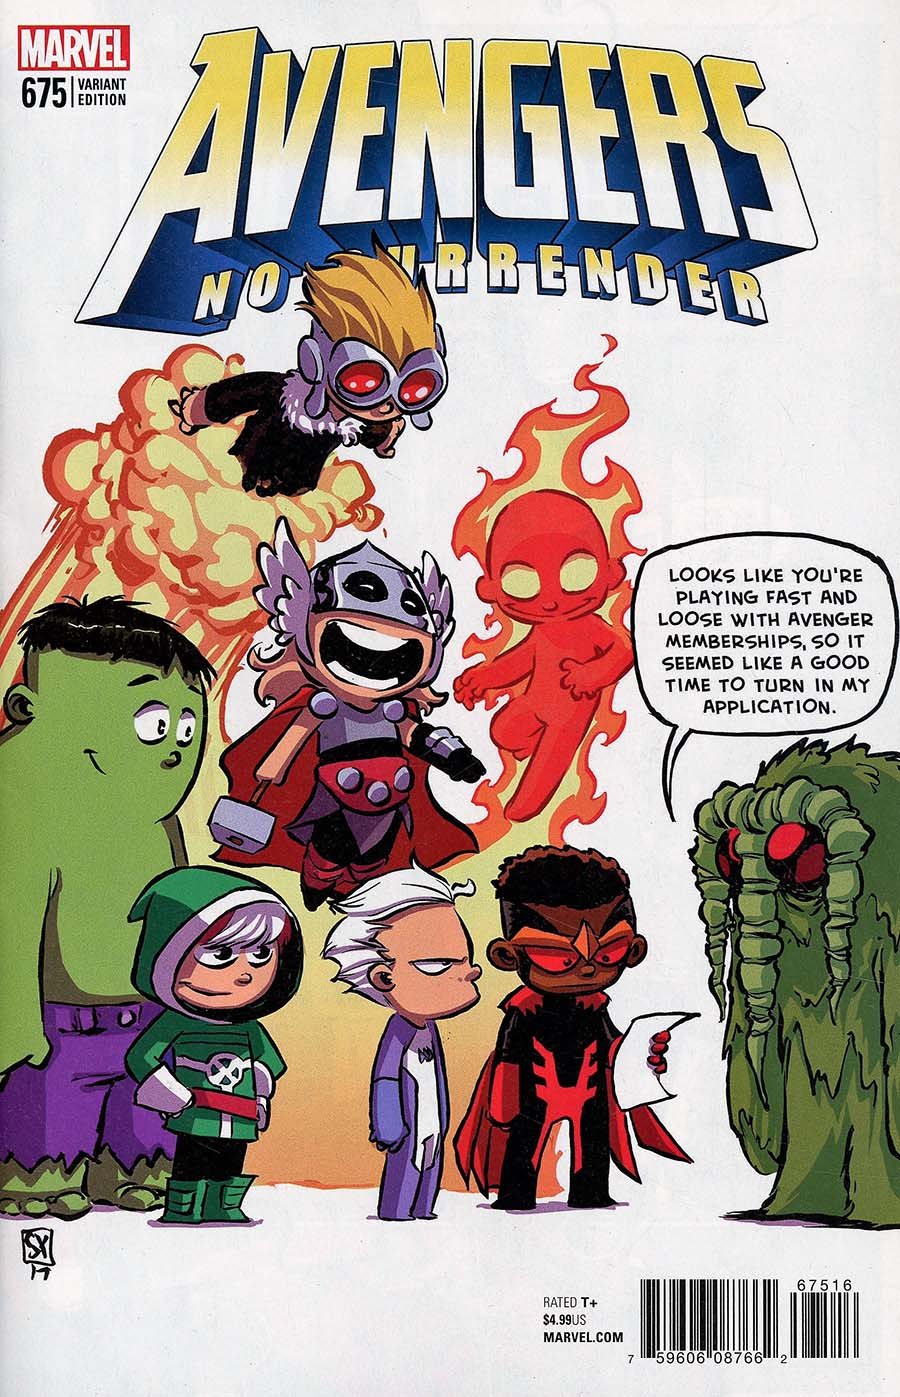 Avengers Vol 6 #675 Cover E Variant Skottie Young Baby Cover (No Surrender Part 1)(Marvel Legacy Tie-In)